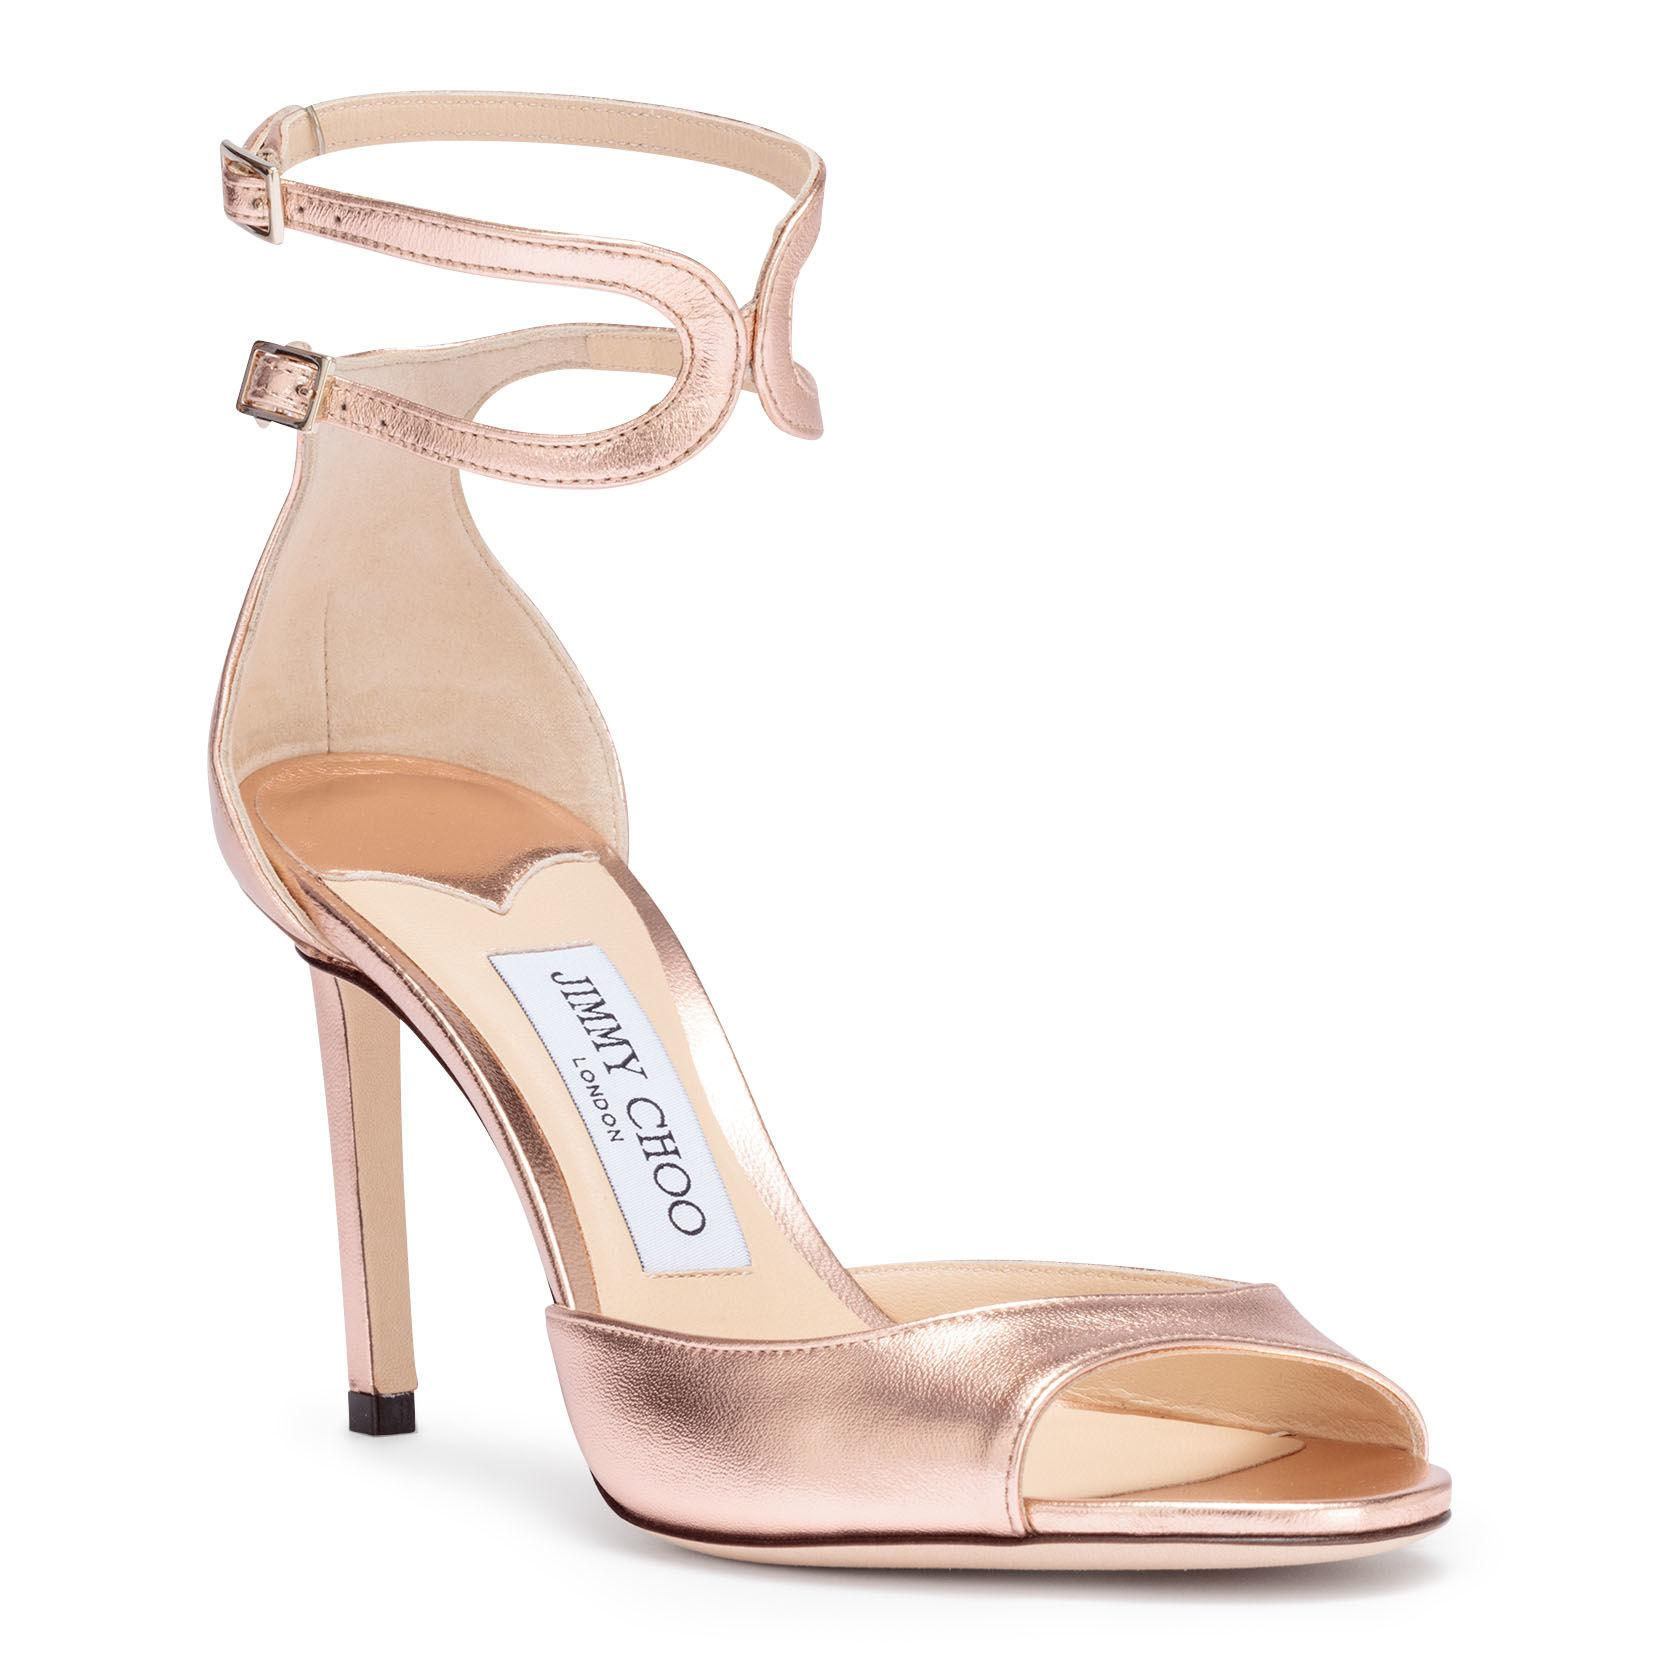 880d2da048b Lyst - Jimmy Choo Lane 85 Metallic Rose Gold Sandals